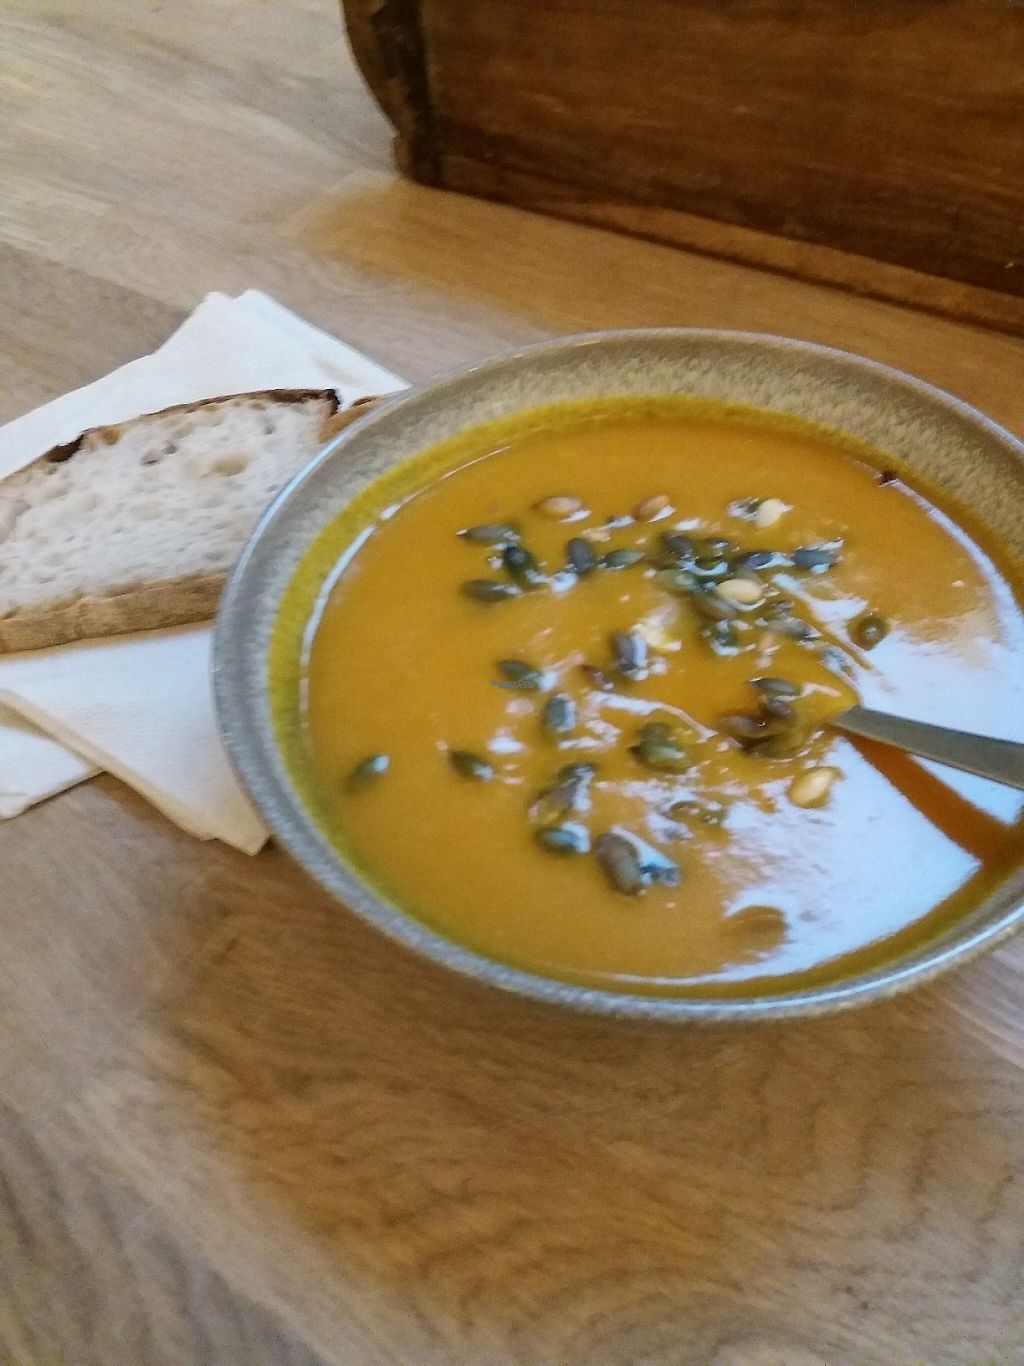 """Photo of California Kitchen  by <a href=""""/members/profile/Smoelfine"""">Smoelfine</a> <br/>Seasonal soup (pumpkin) <br/> December 12, 2016  - <a href='/contact/abuse/image/83788/200189'>Report</a>"""